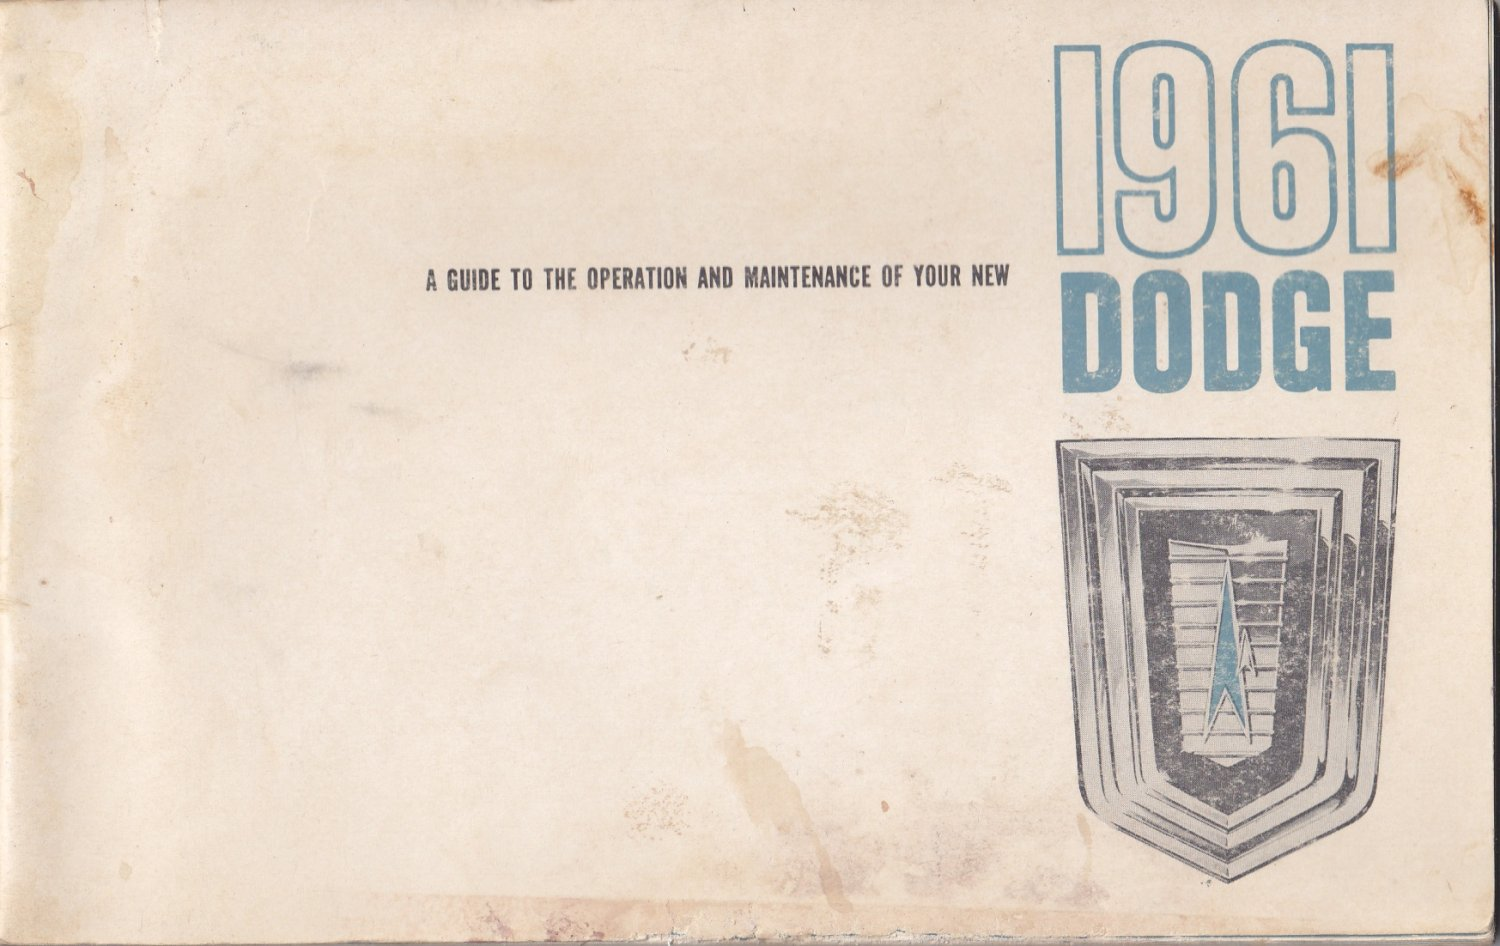 1961 Dodge owners manual